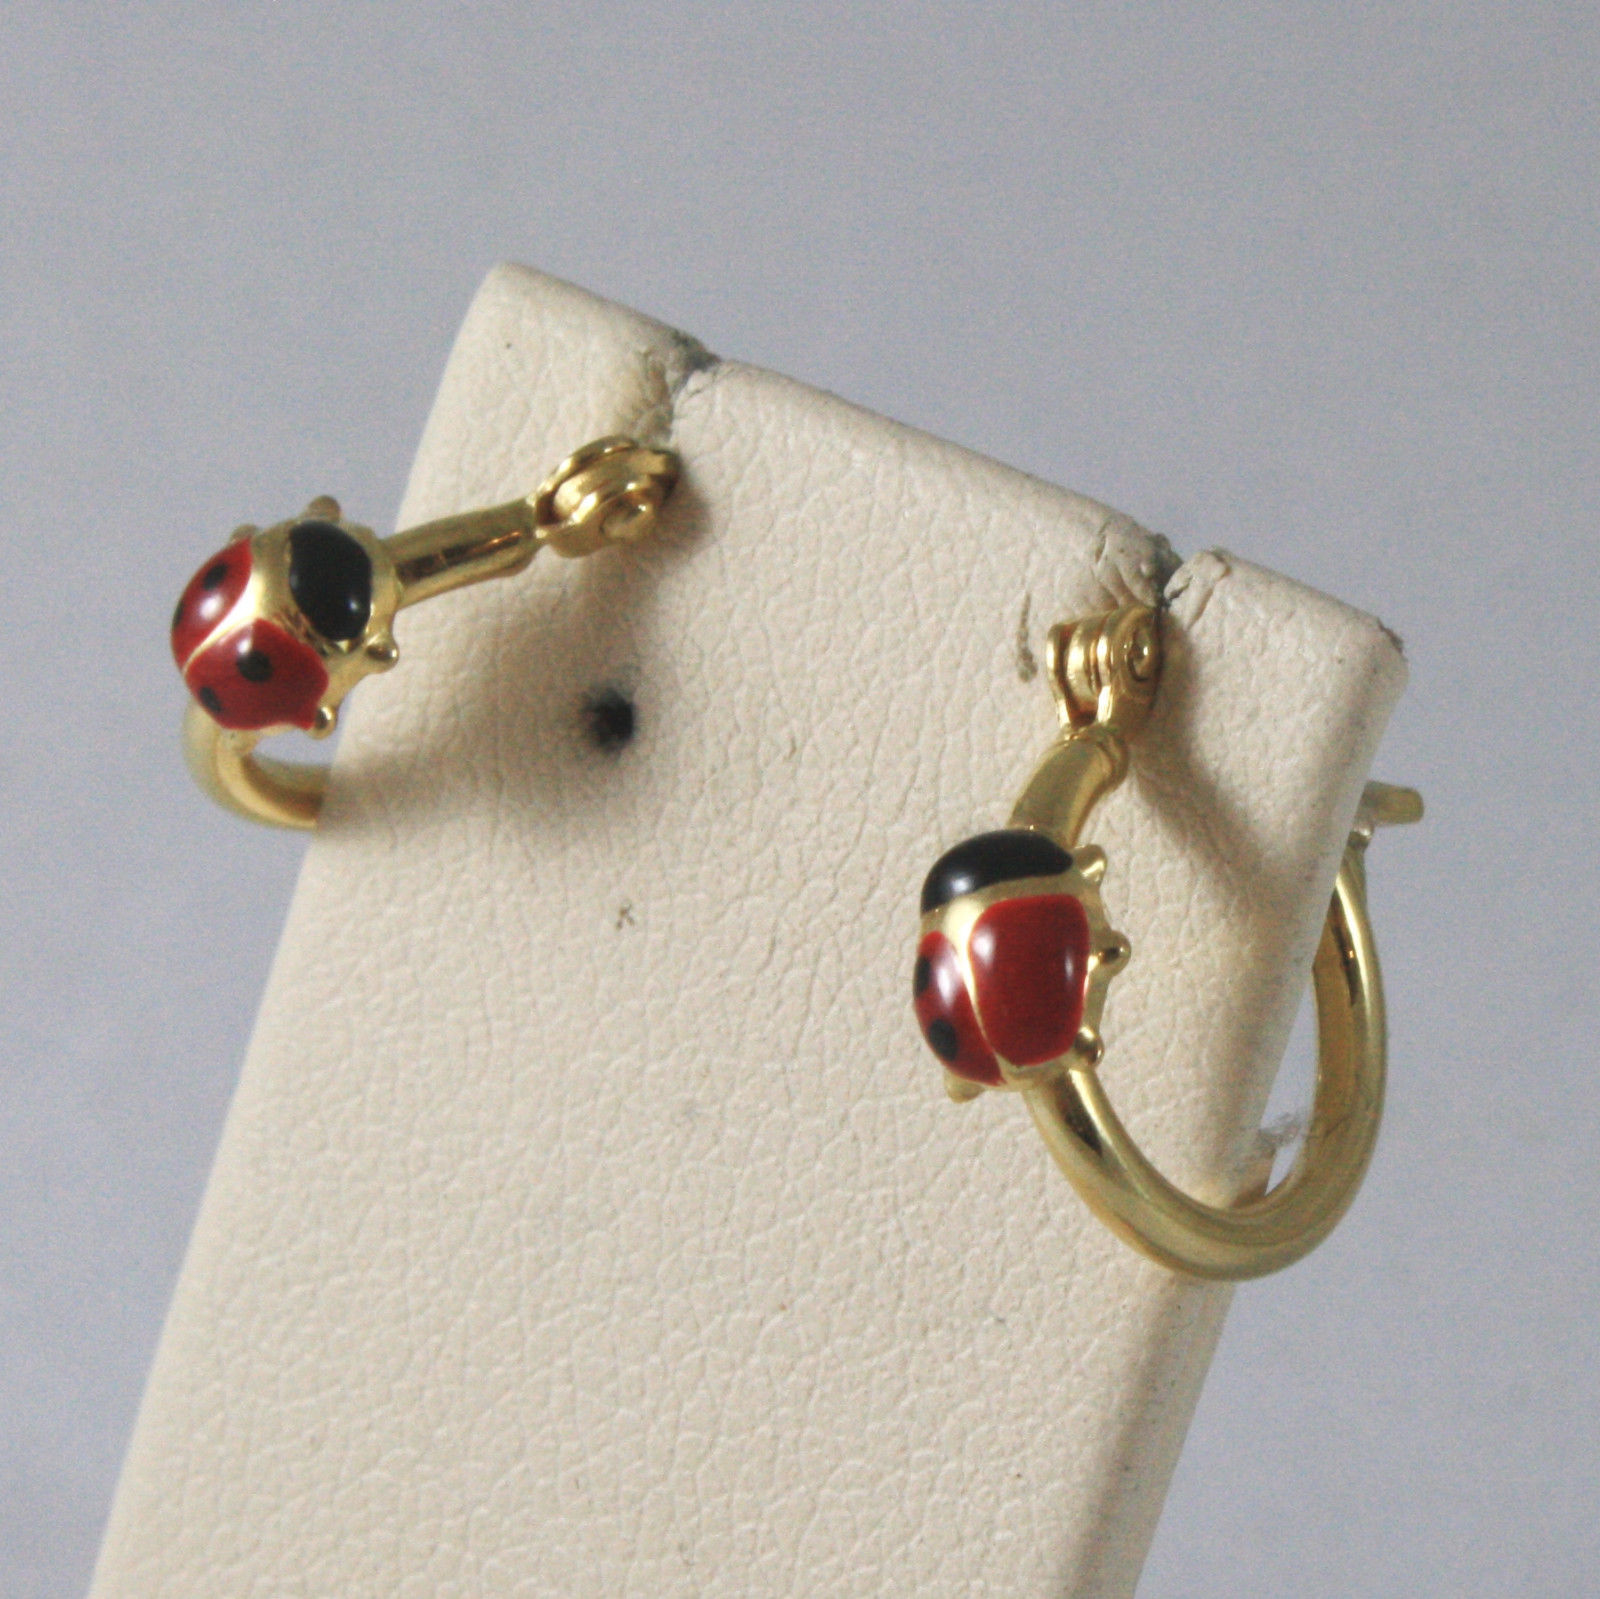 SOLID 18KT. YELLOW GOLD CIRCLE EARRINGS WITH LADYBIRDS MADE IN ITALY 18K